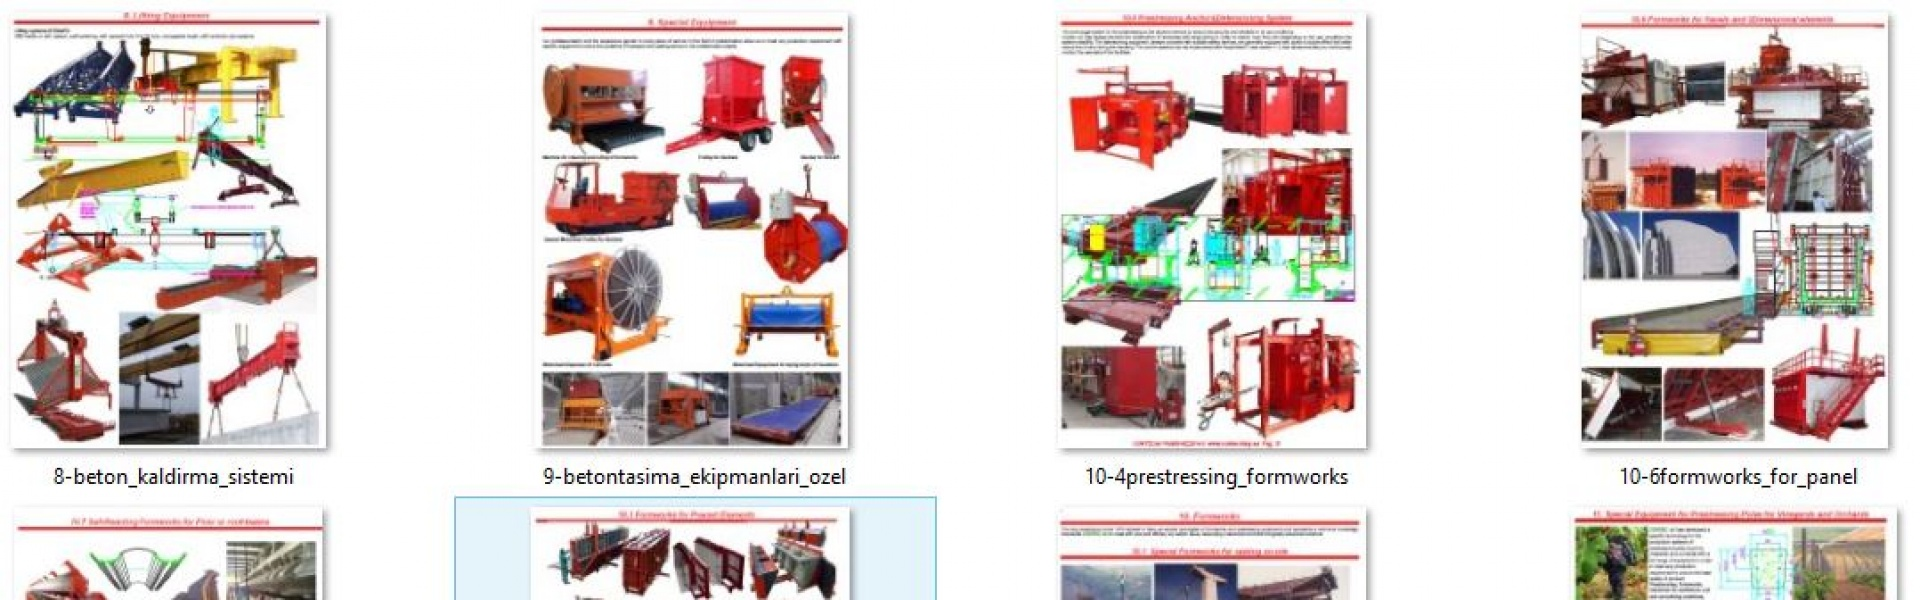 CONCRETE FORMWORKS AND PRESTRESSING MACHINES